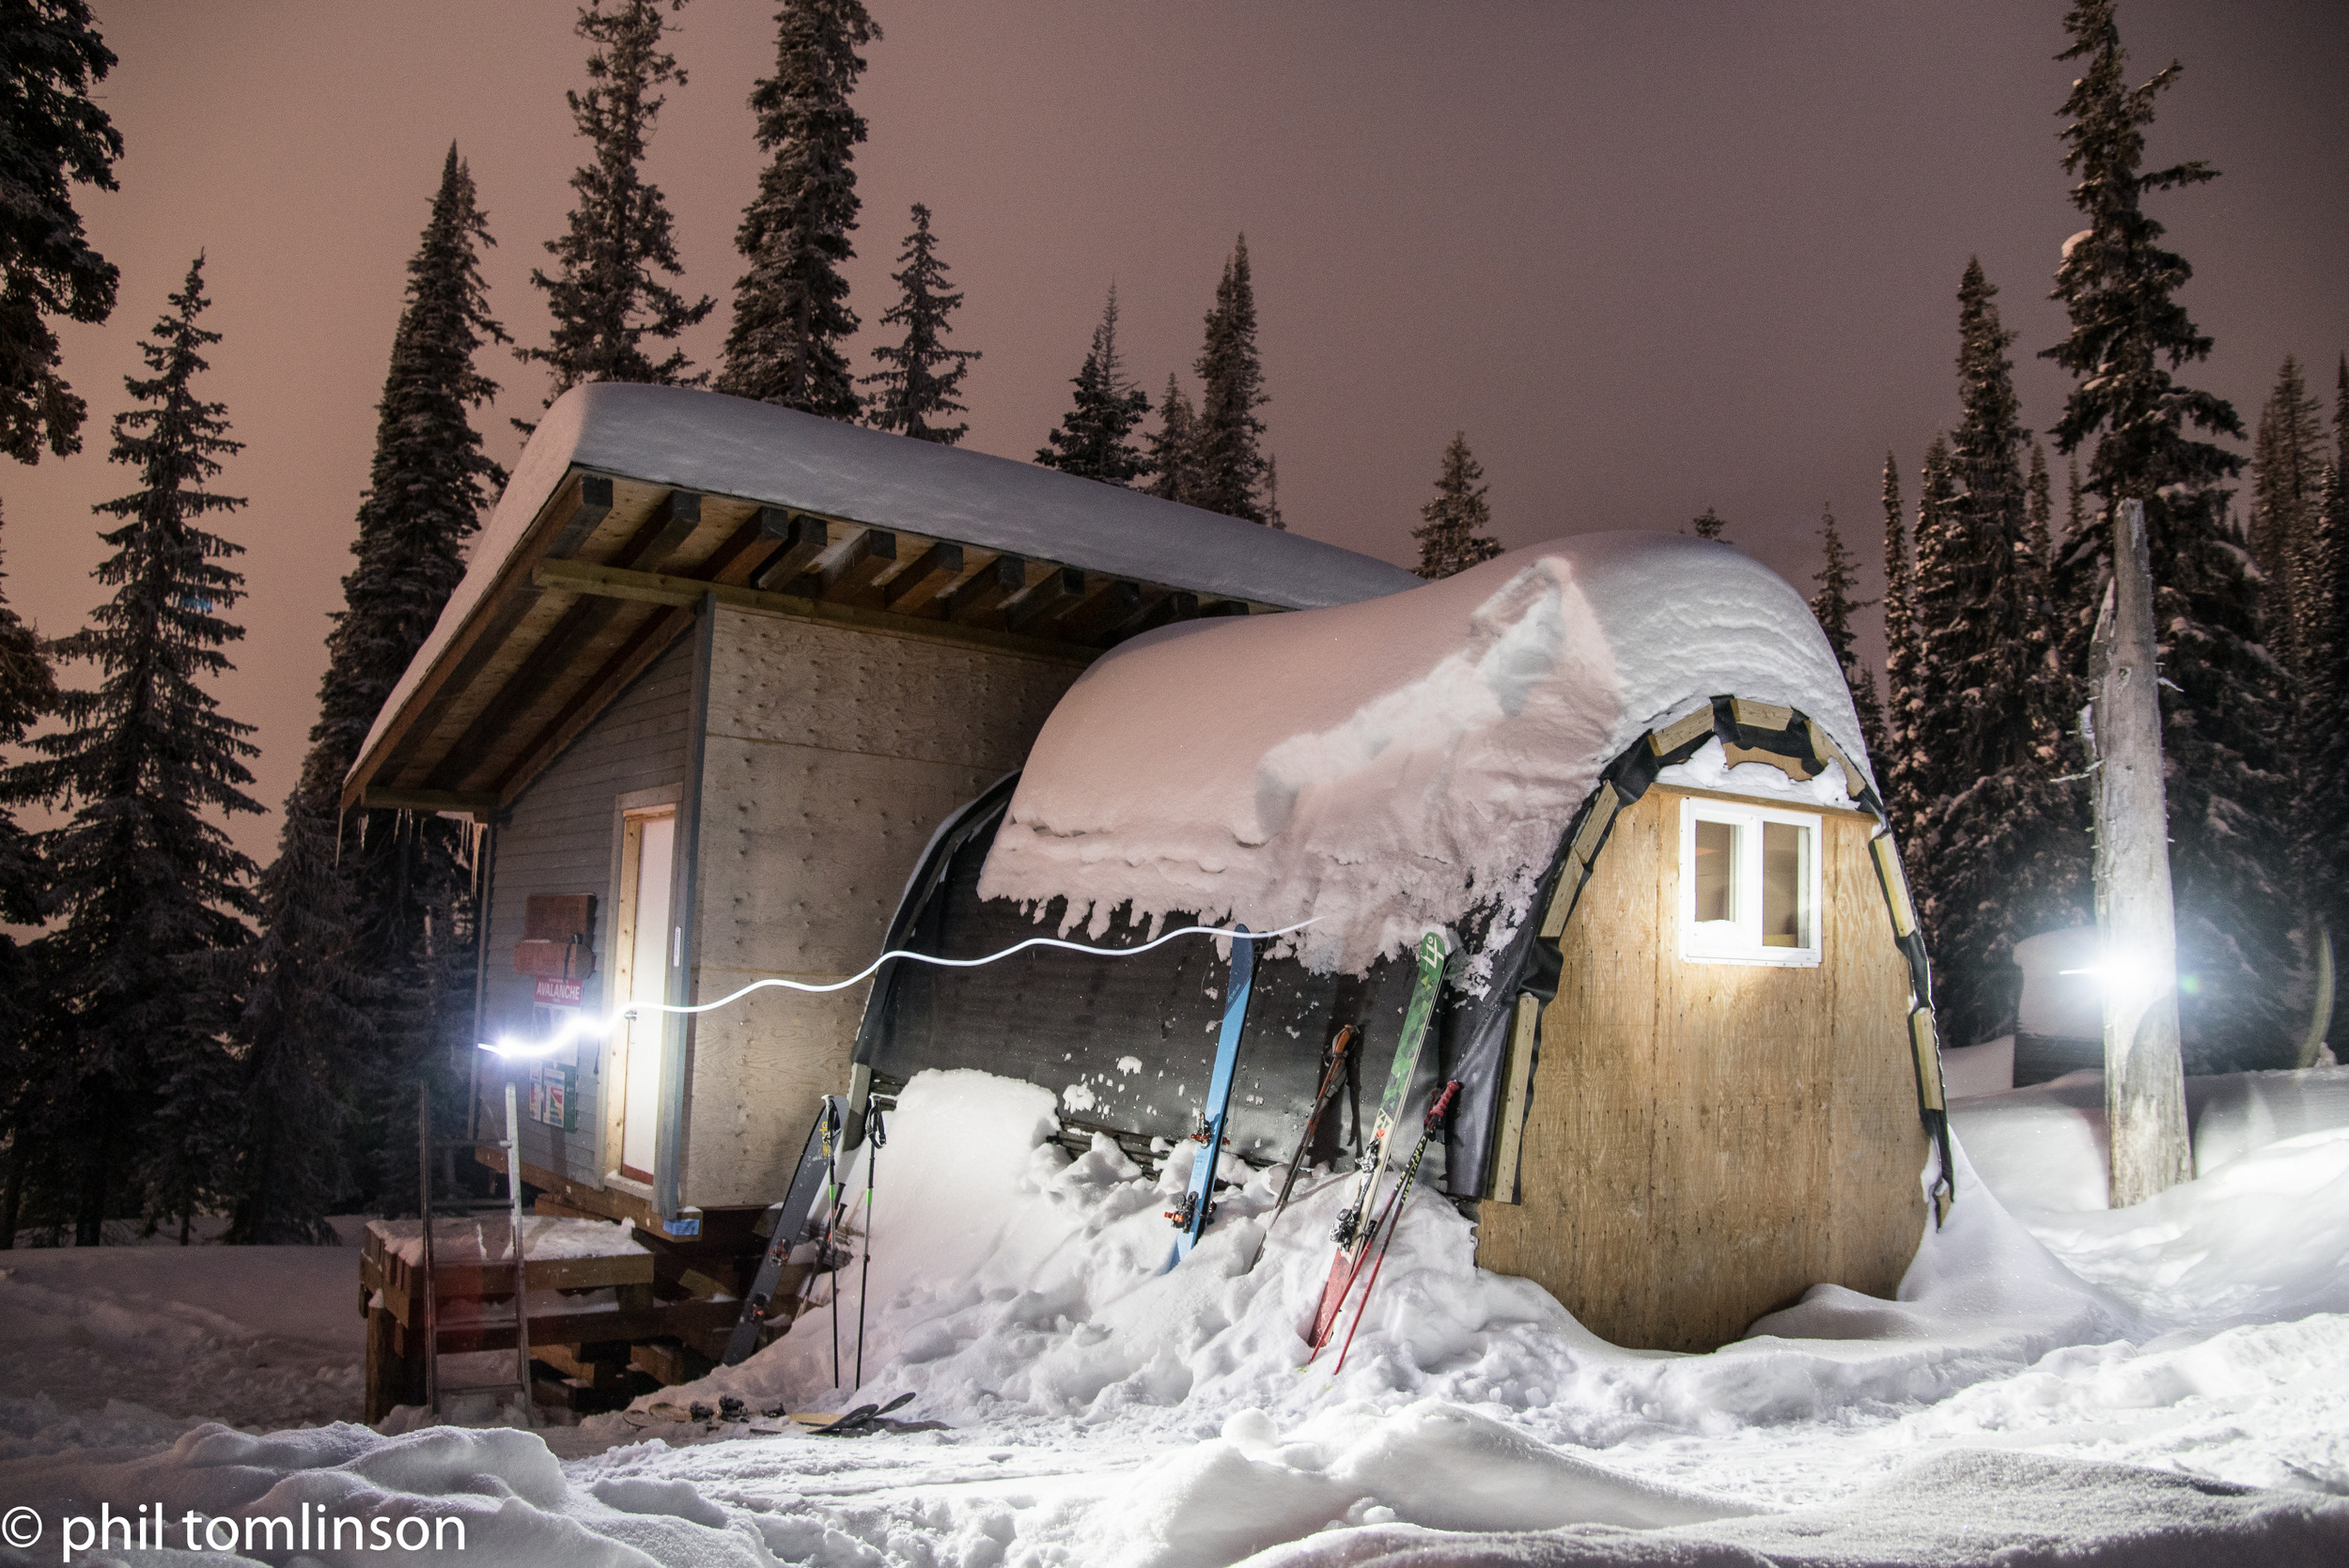 The Tunnel Creek Hut may be basic, but it's home to some of the best tree skiing on the planet.